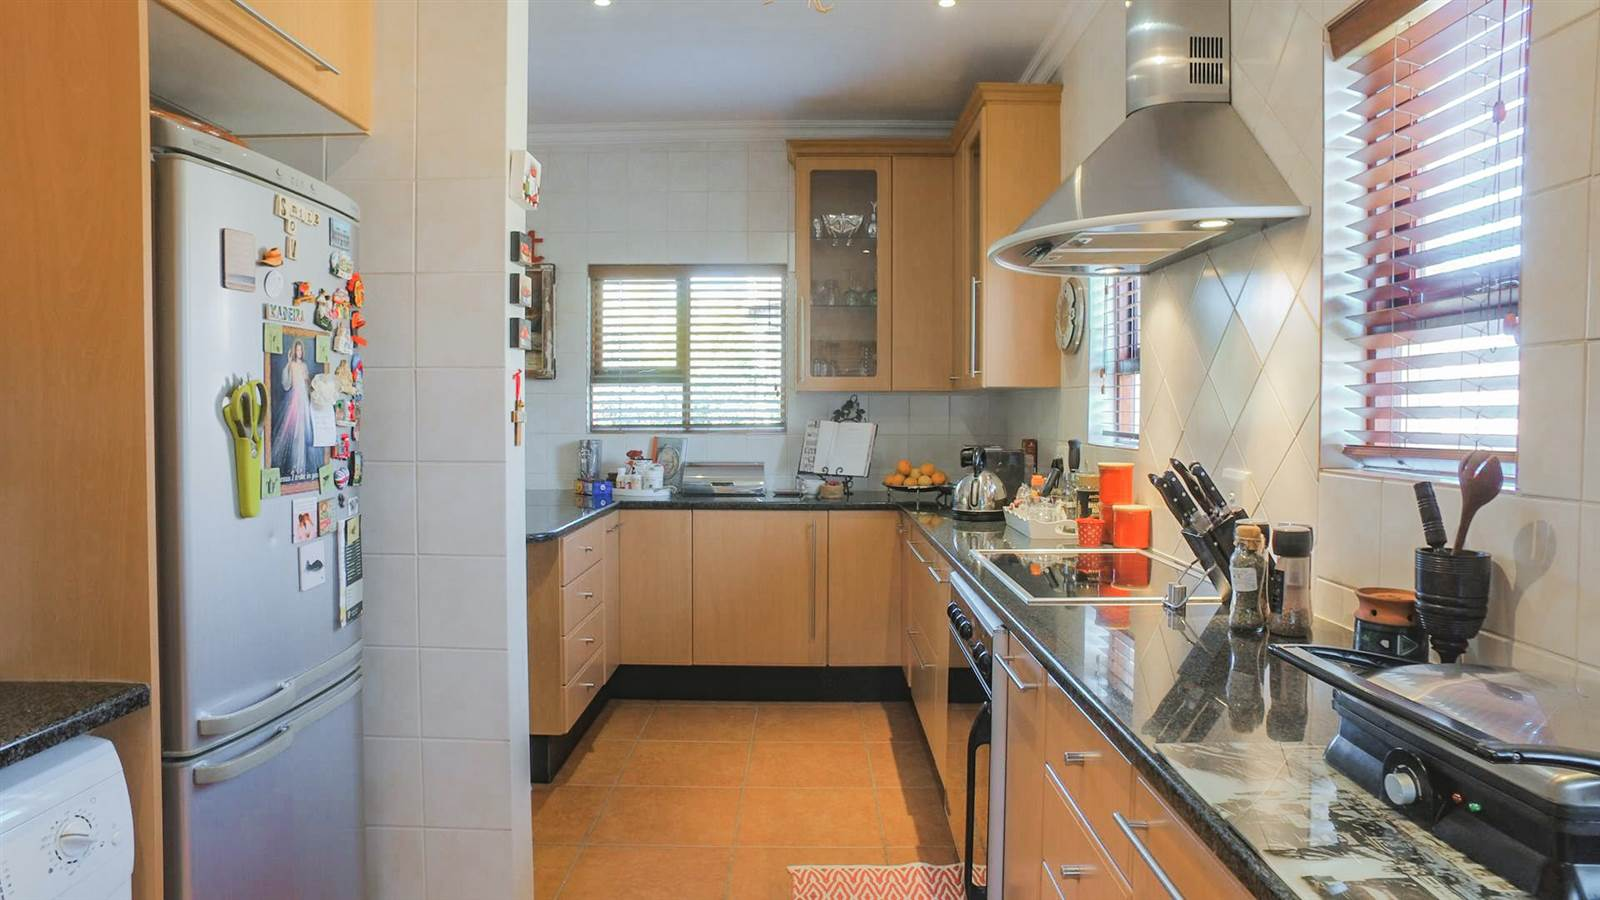 4 Bedroom Townhouse for sale in Mulbarton ENT0067436 : photo#6